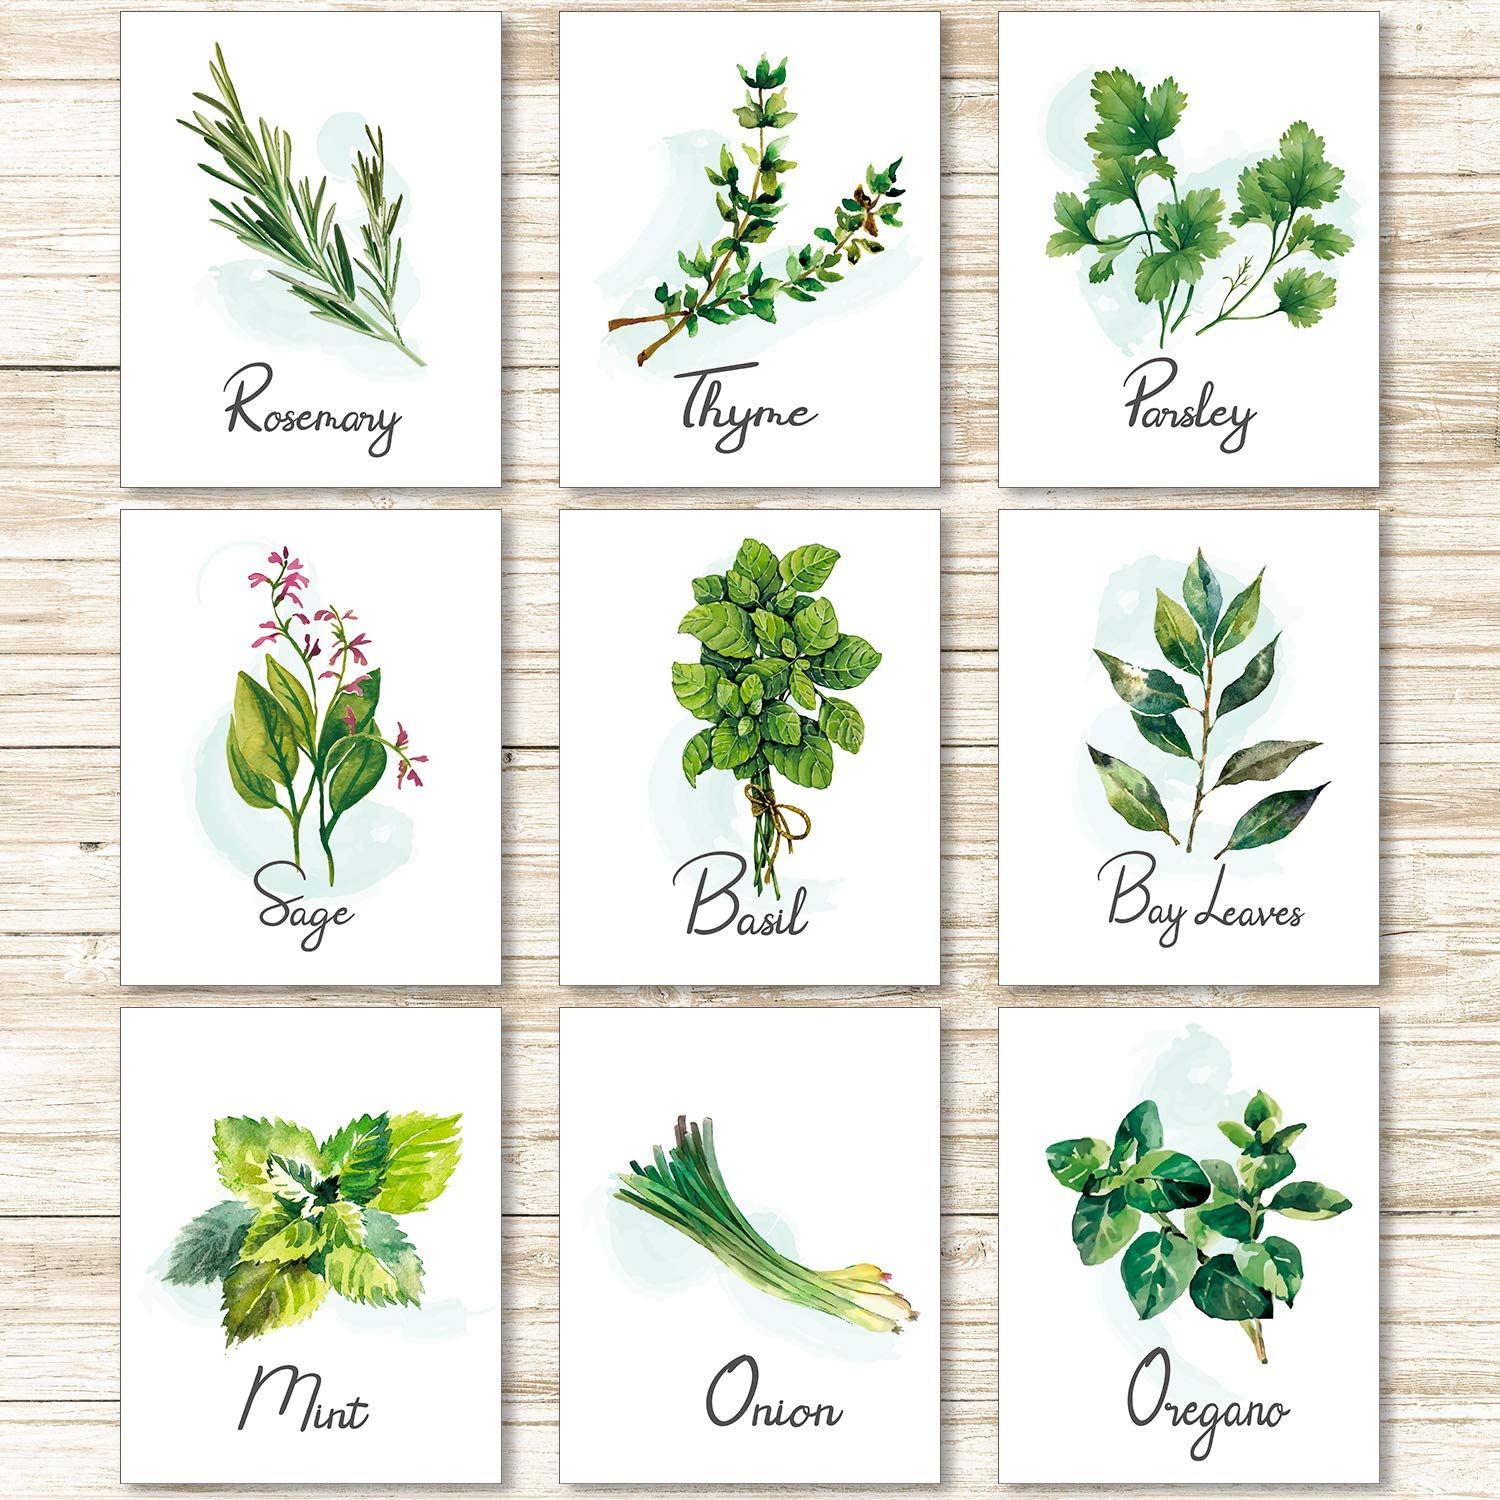 9 Pieces Kitchen Herb Botanical Wall Art Print Poster Nature Floral Plant Greenery Art Sign Picture for Bedroom Living Room Wall Decorations (Unframed, 8 x 10 Inch)